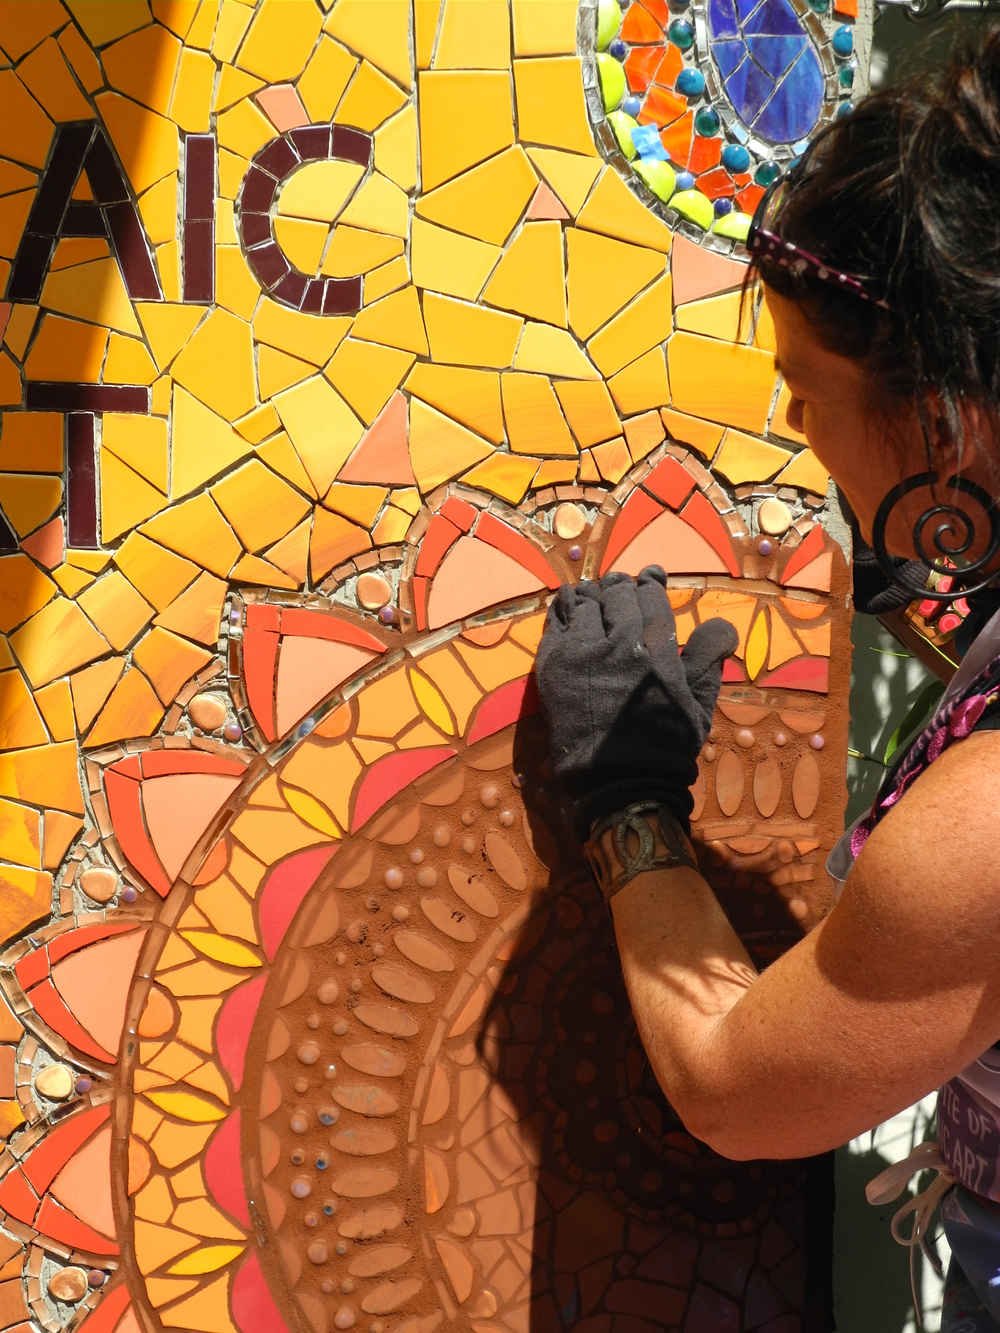 Laurel True demonstrating proper grout cleaning applications for her mosaic mural.